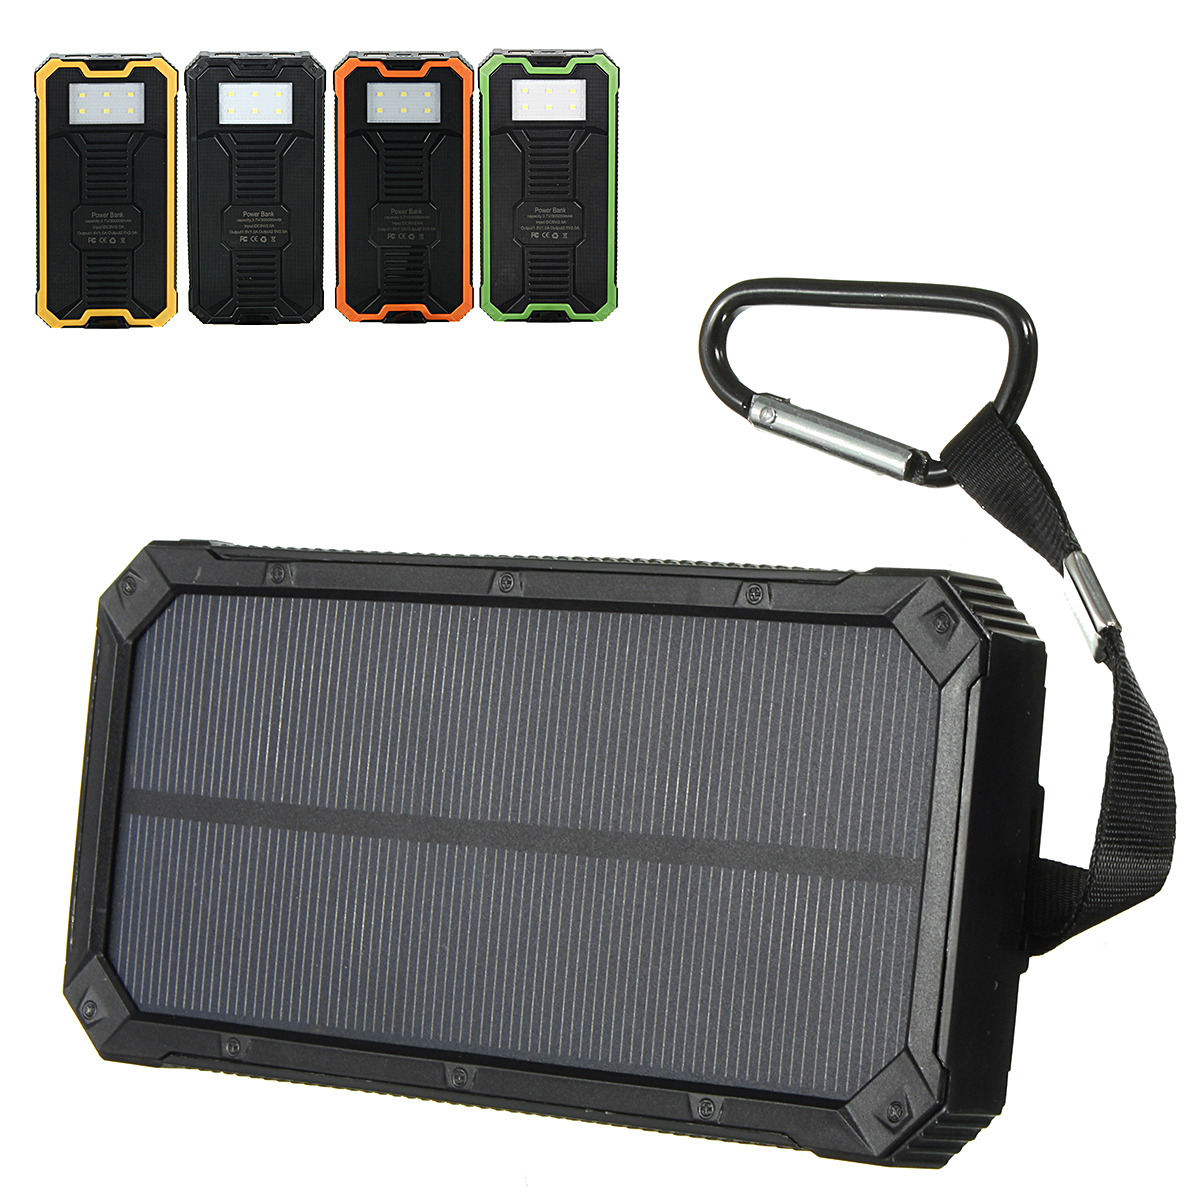 Solar Power Bank Case Portable External Battery Charger For Smart Phone Battery 2*606090 not Included no Battery 2*706090